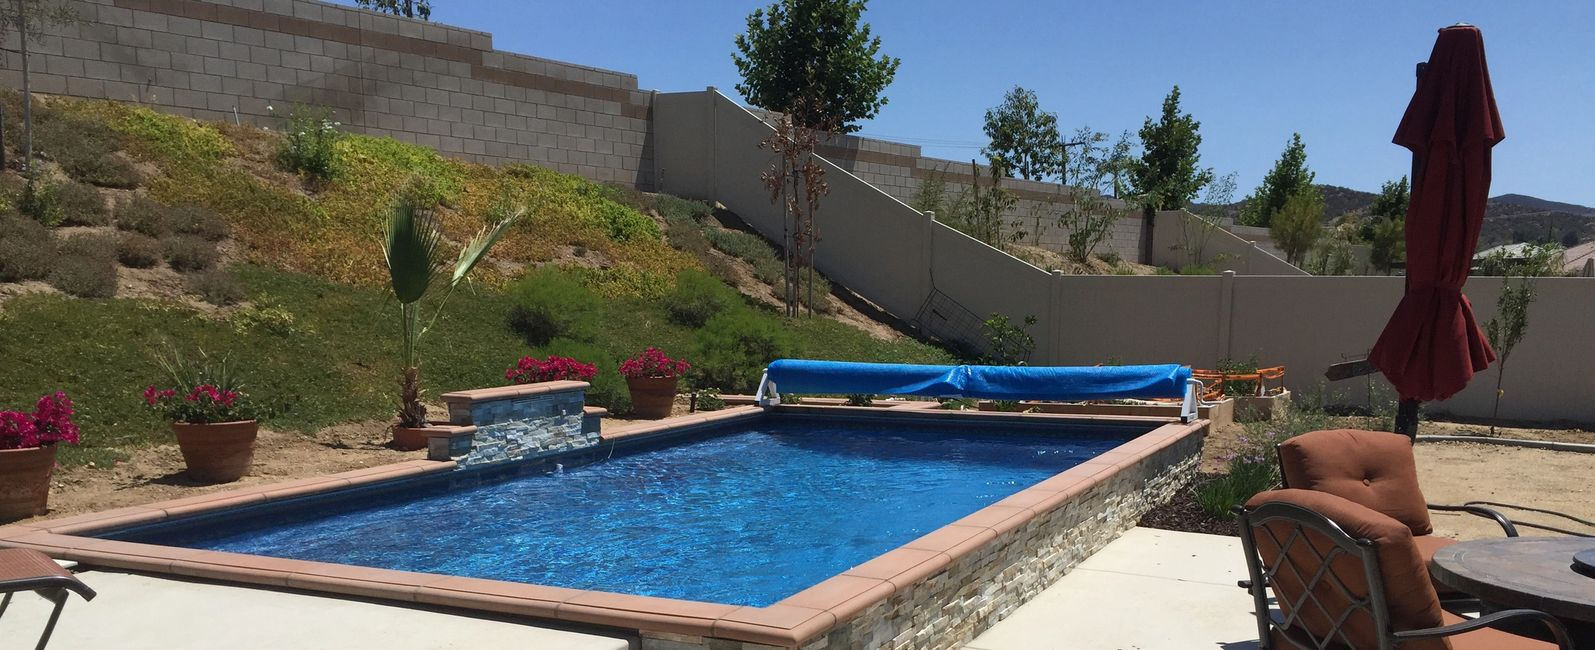 Swimming Pool Contractor and Vinyl Liner Replacement. Vinyl Pool Contractor. Vinyl Pool Builder.